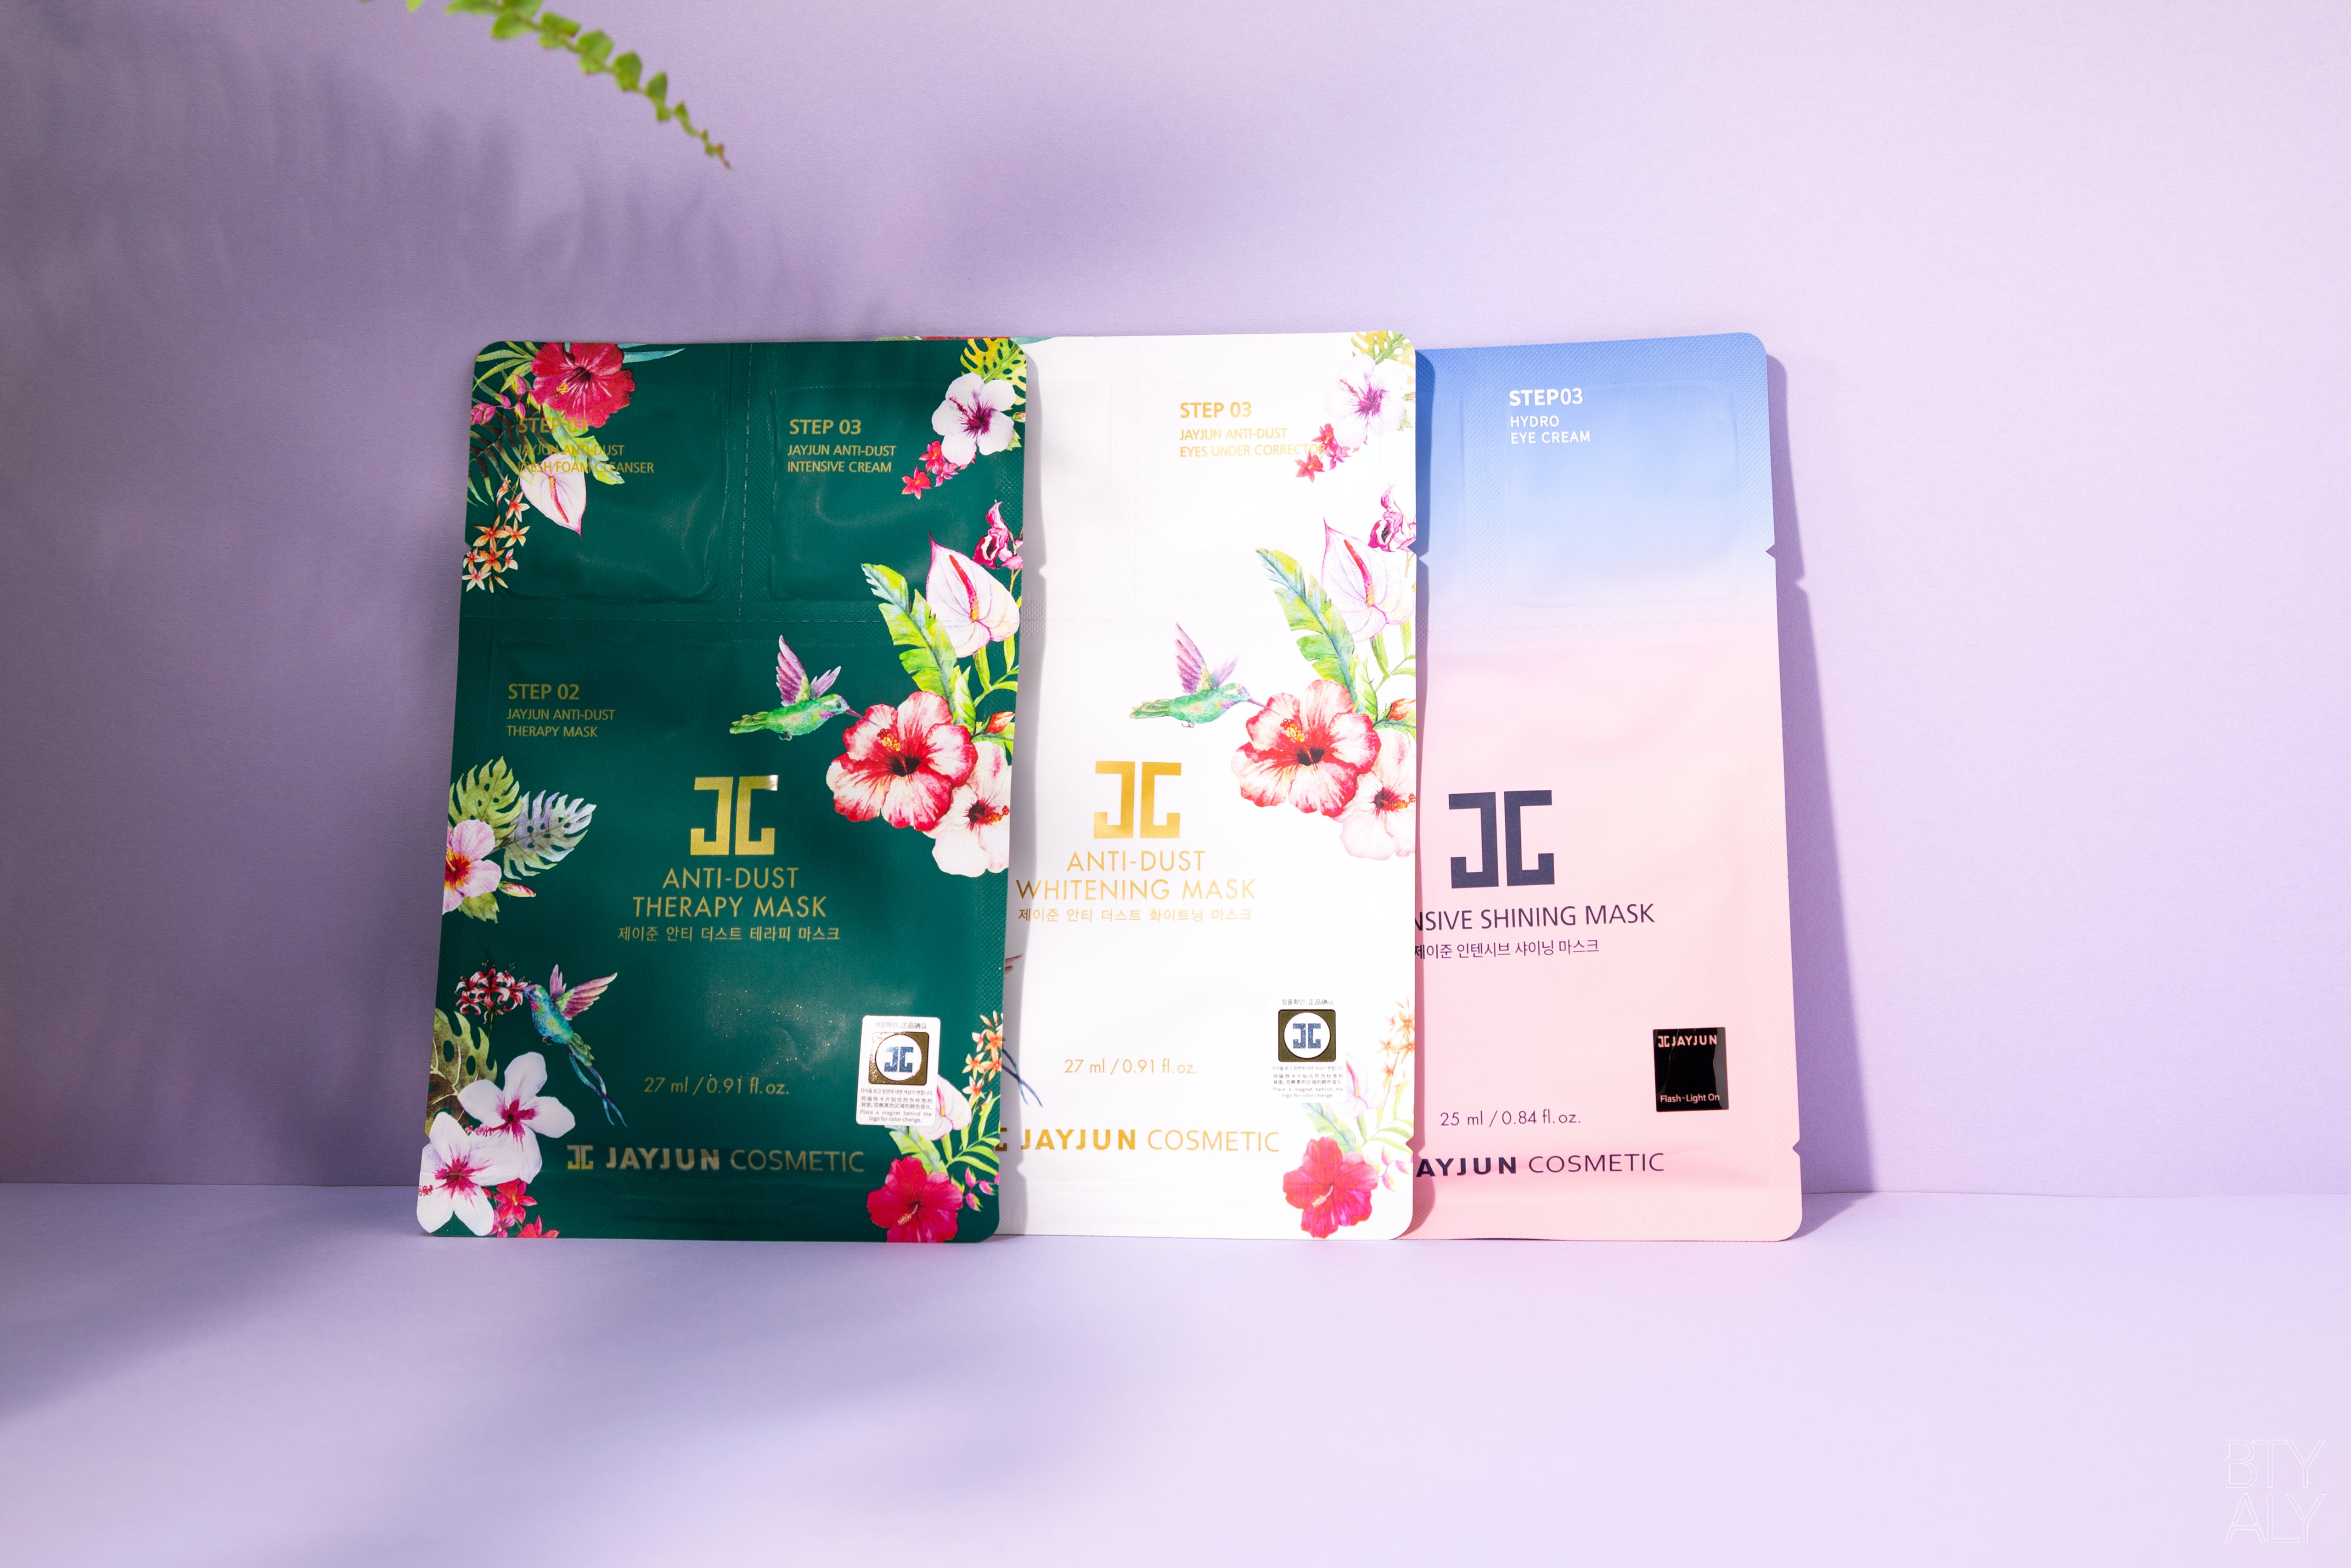 Jay Jun Cosmetics Anti Dust Therapy Mask, Anti Dust Whitening Mask, Intensive Shining Mask